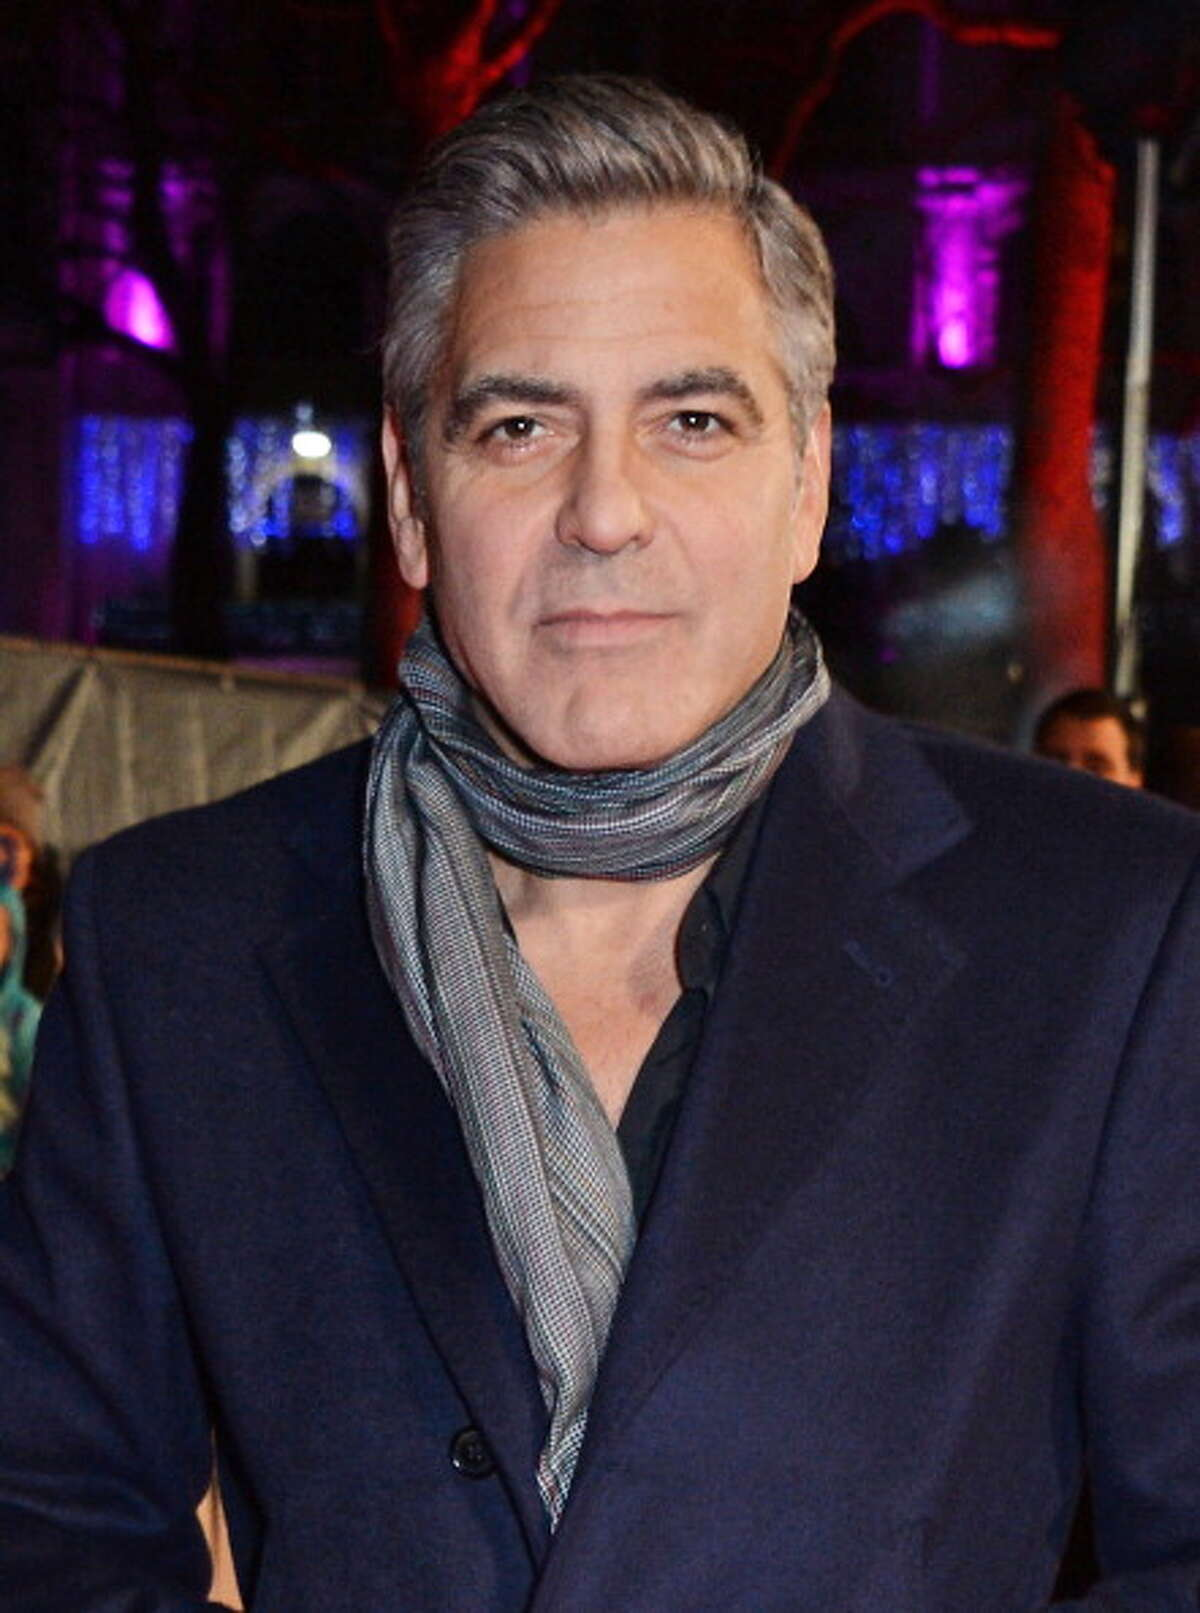 2014: actor attends the UK Premiere of